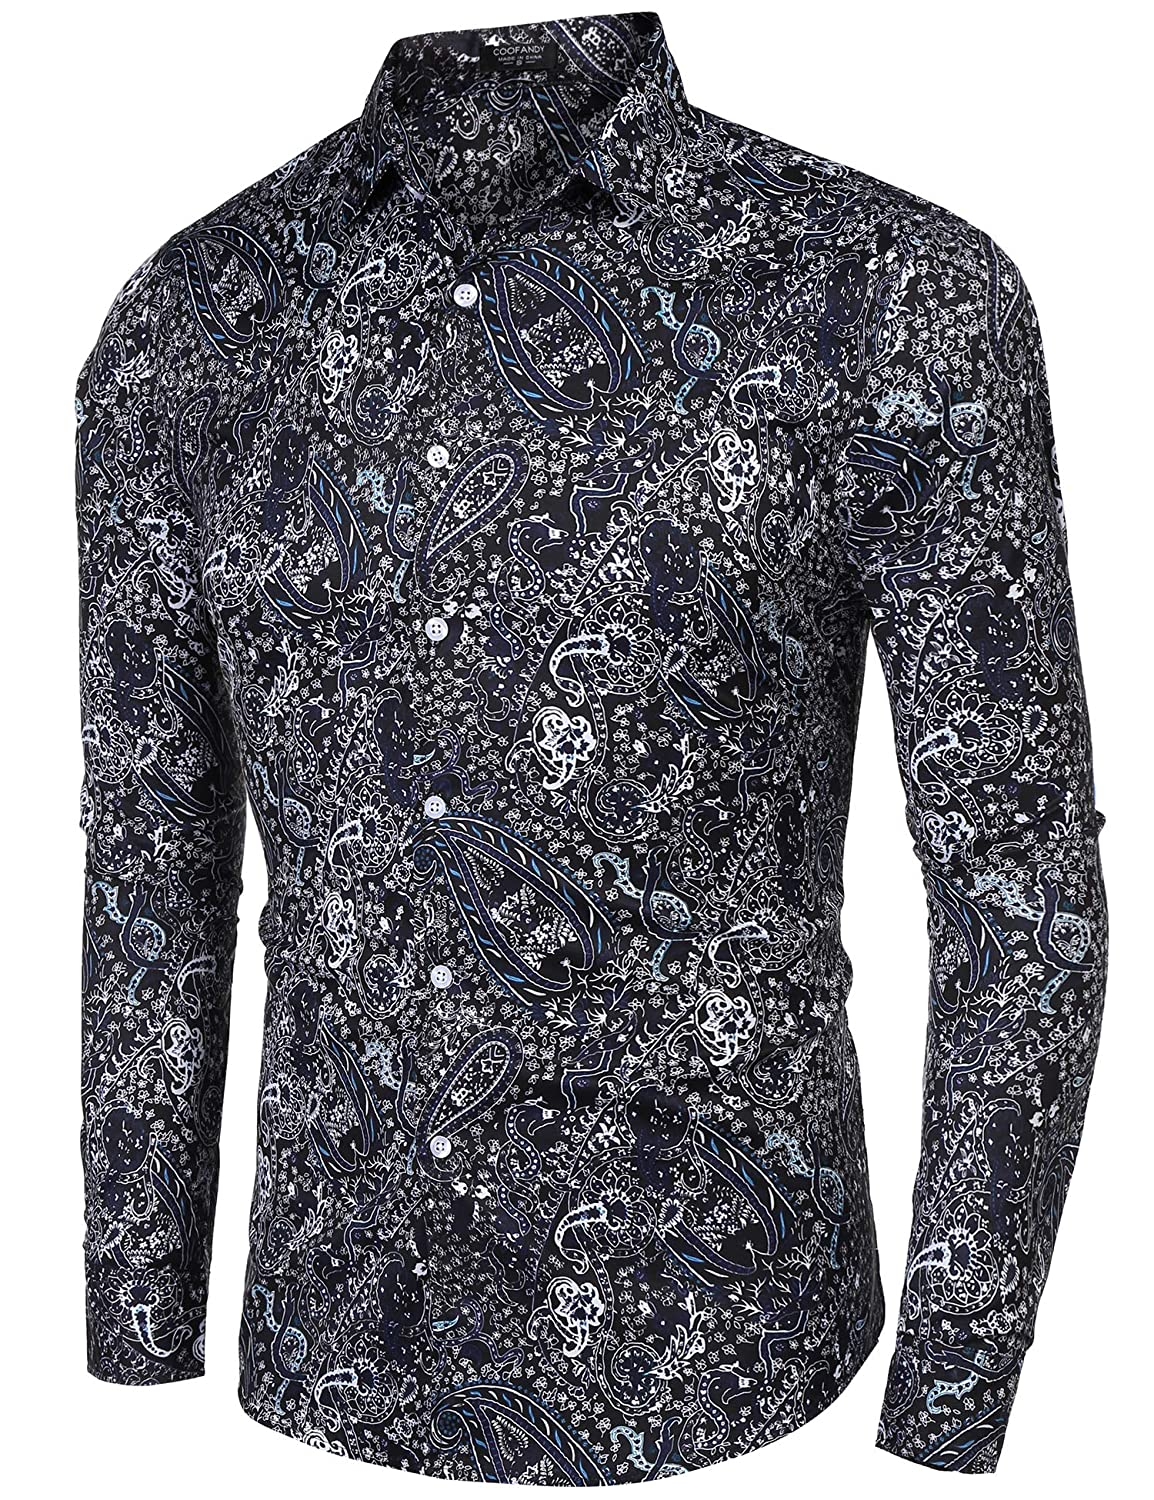 d24aa326 JINIDU Men's Floral Dress Shirt Slim Fit Casual Paisley Printed Button Down  Shirts: Amazon.co.uk: Clothing